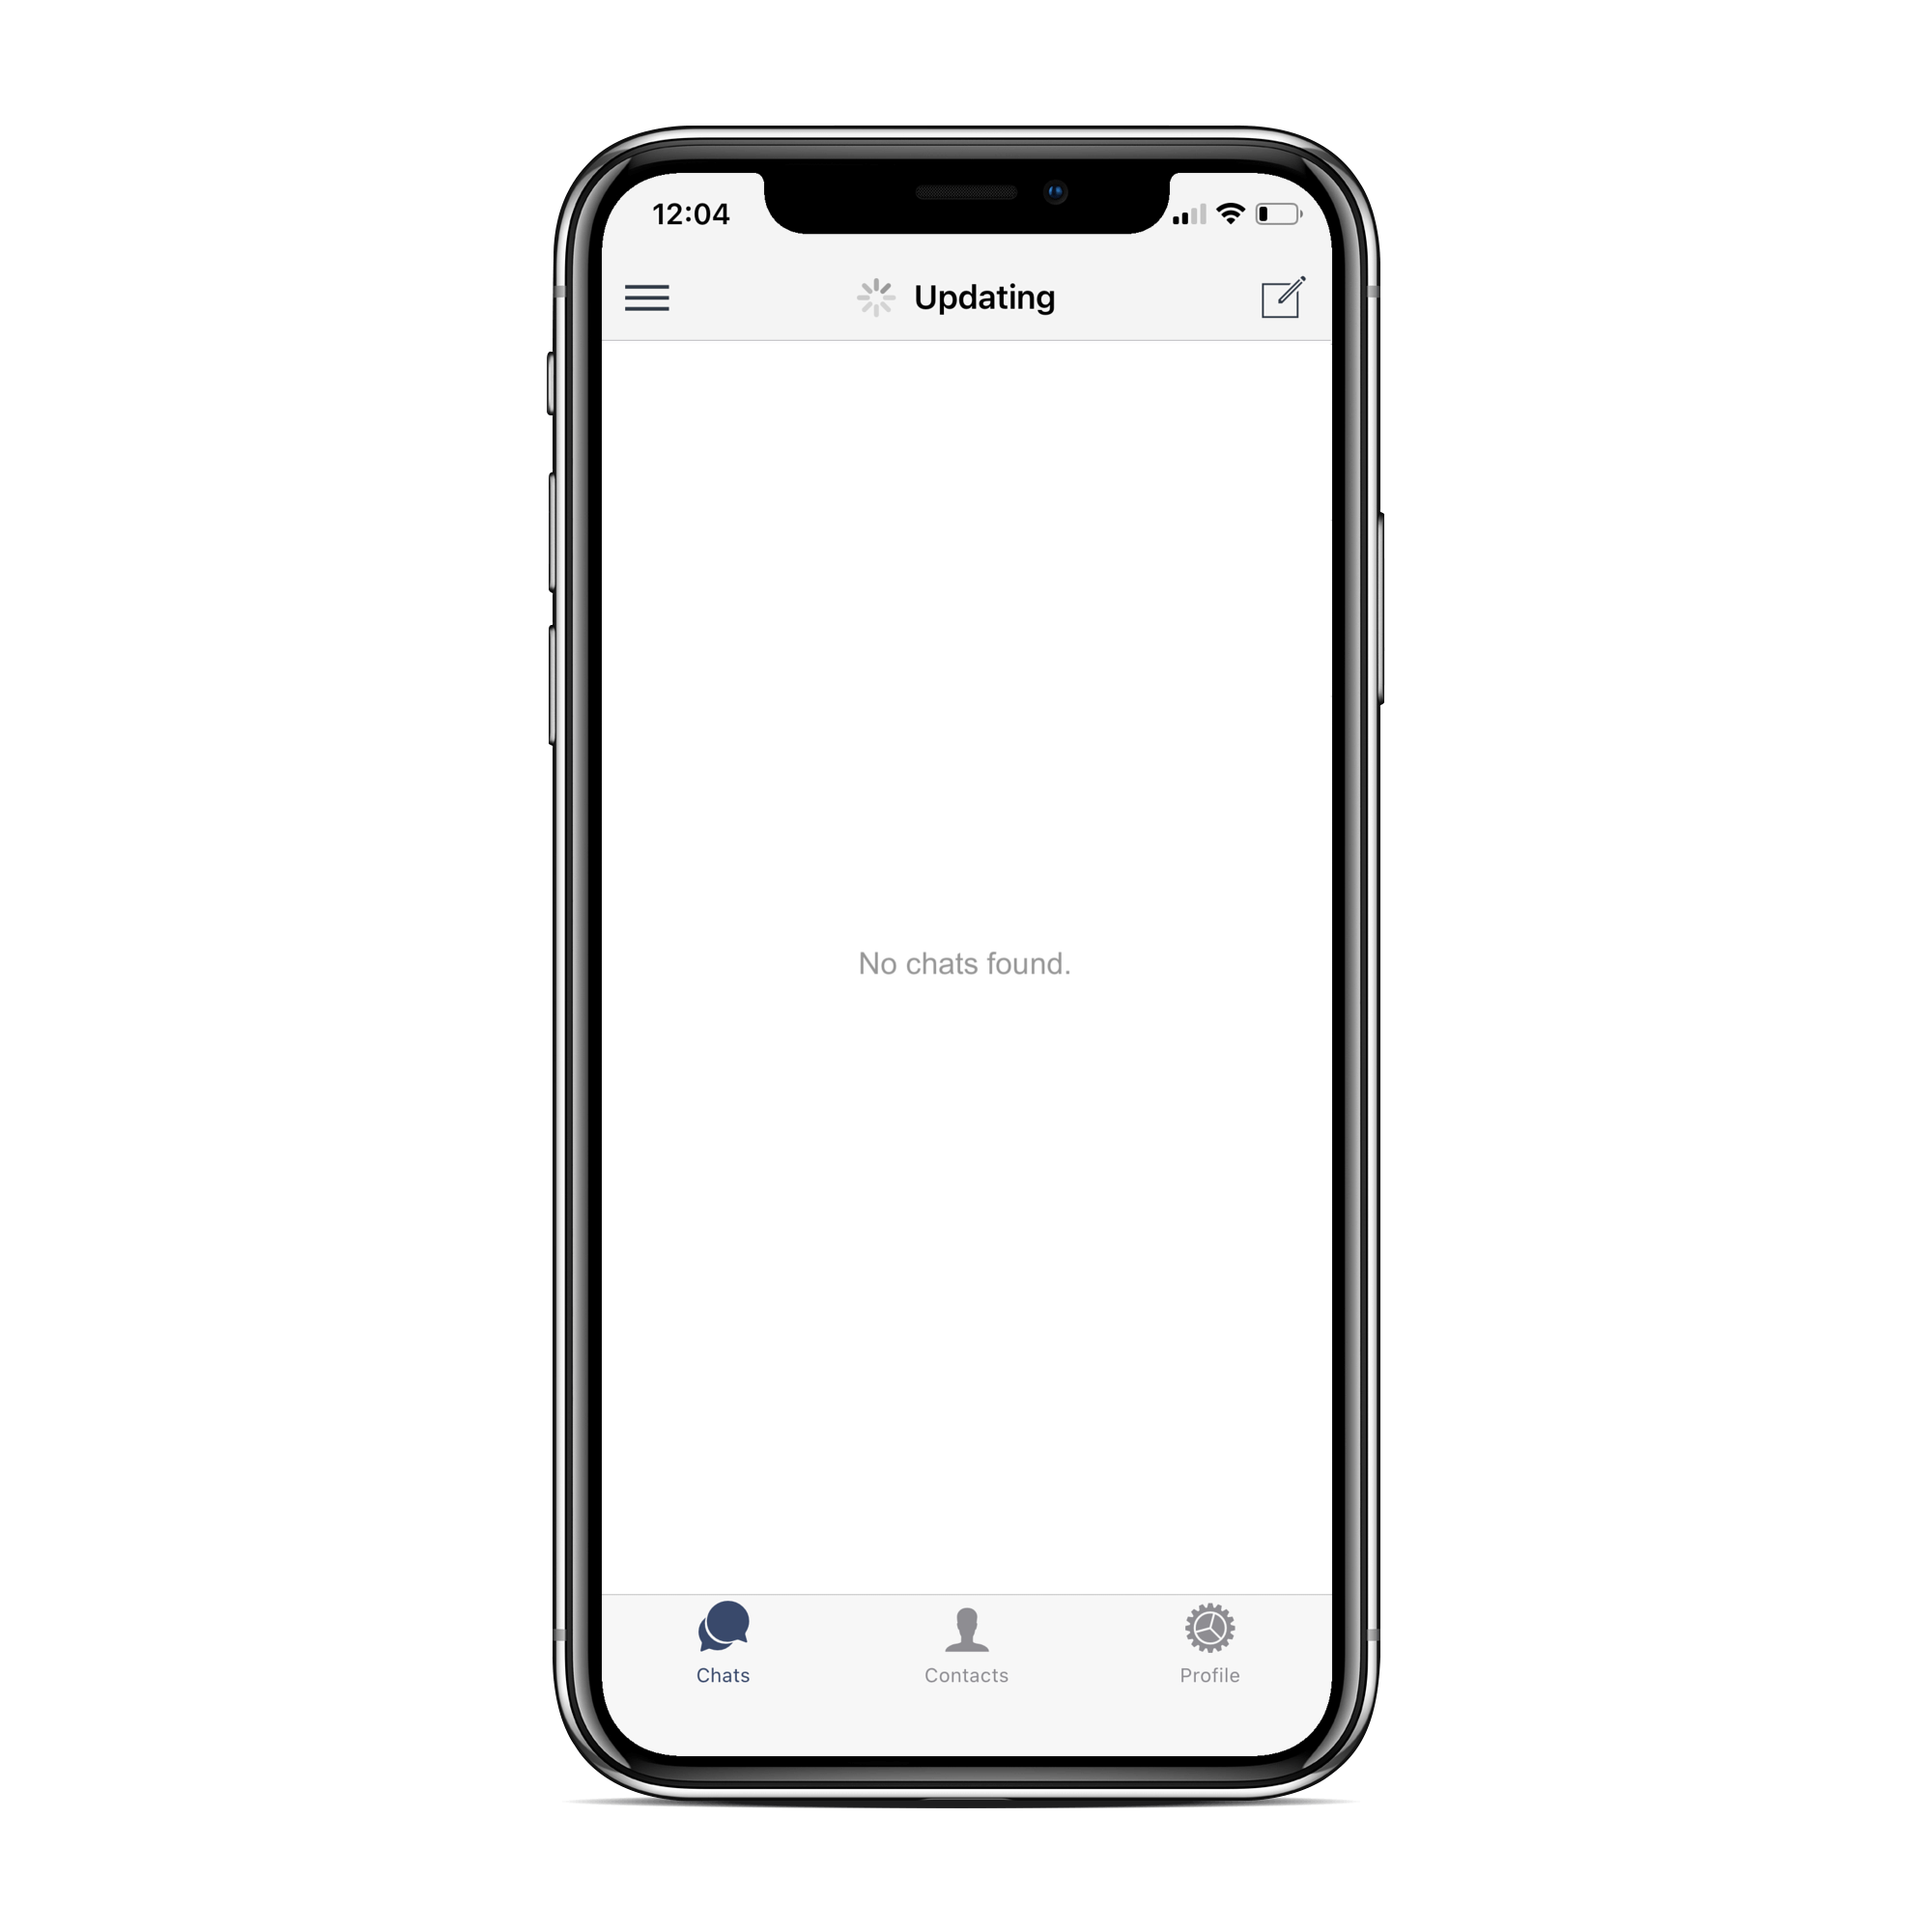 Updating_screen_iphonexspacegrey_portrait.png